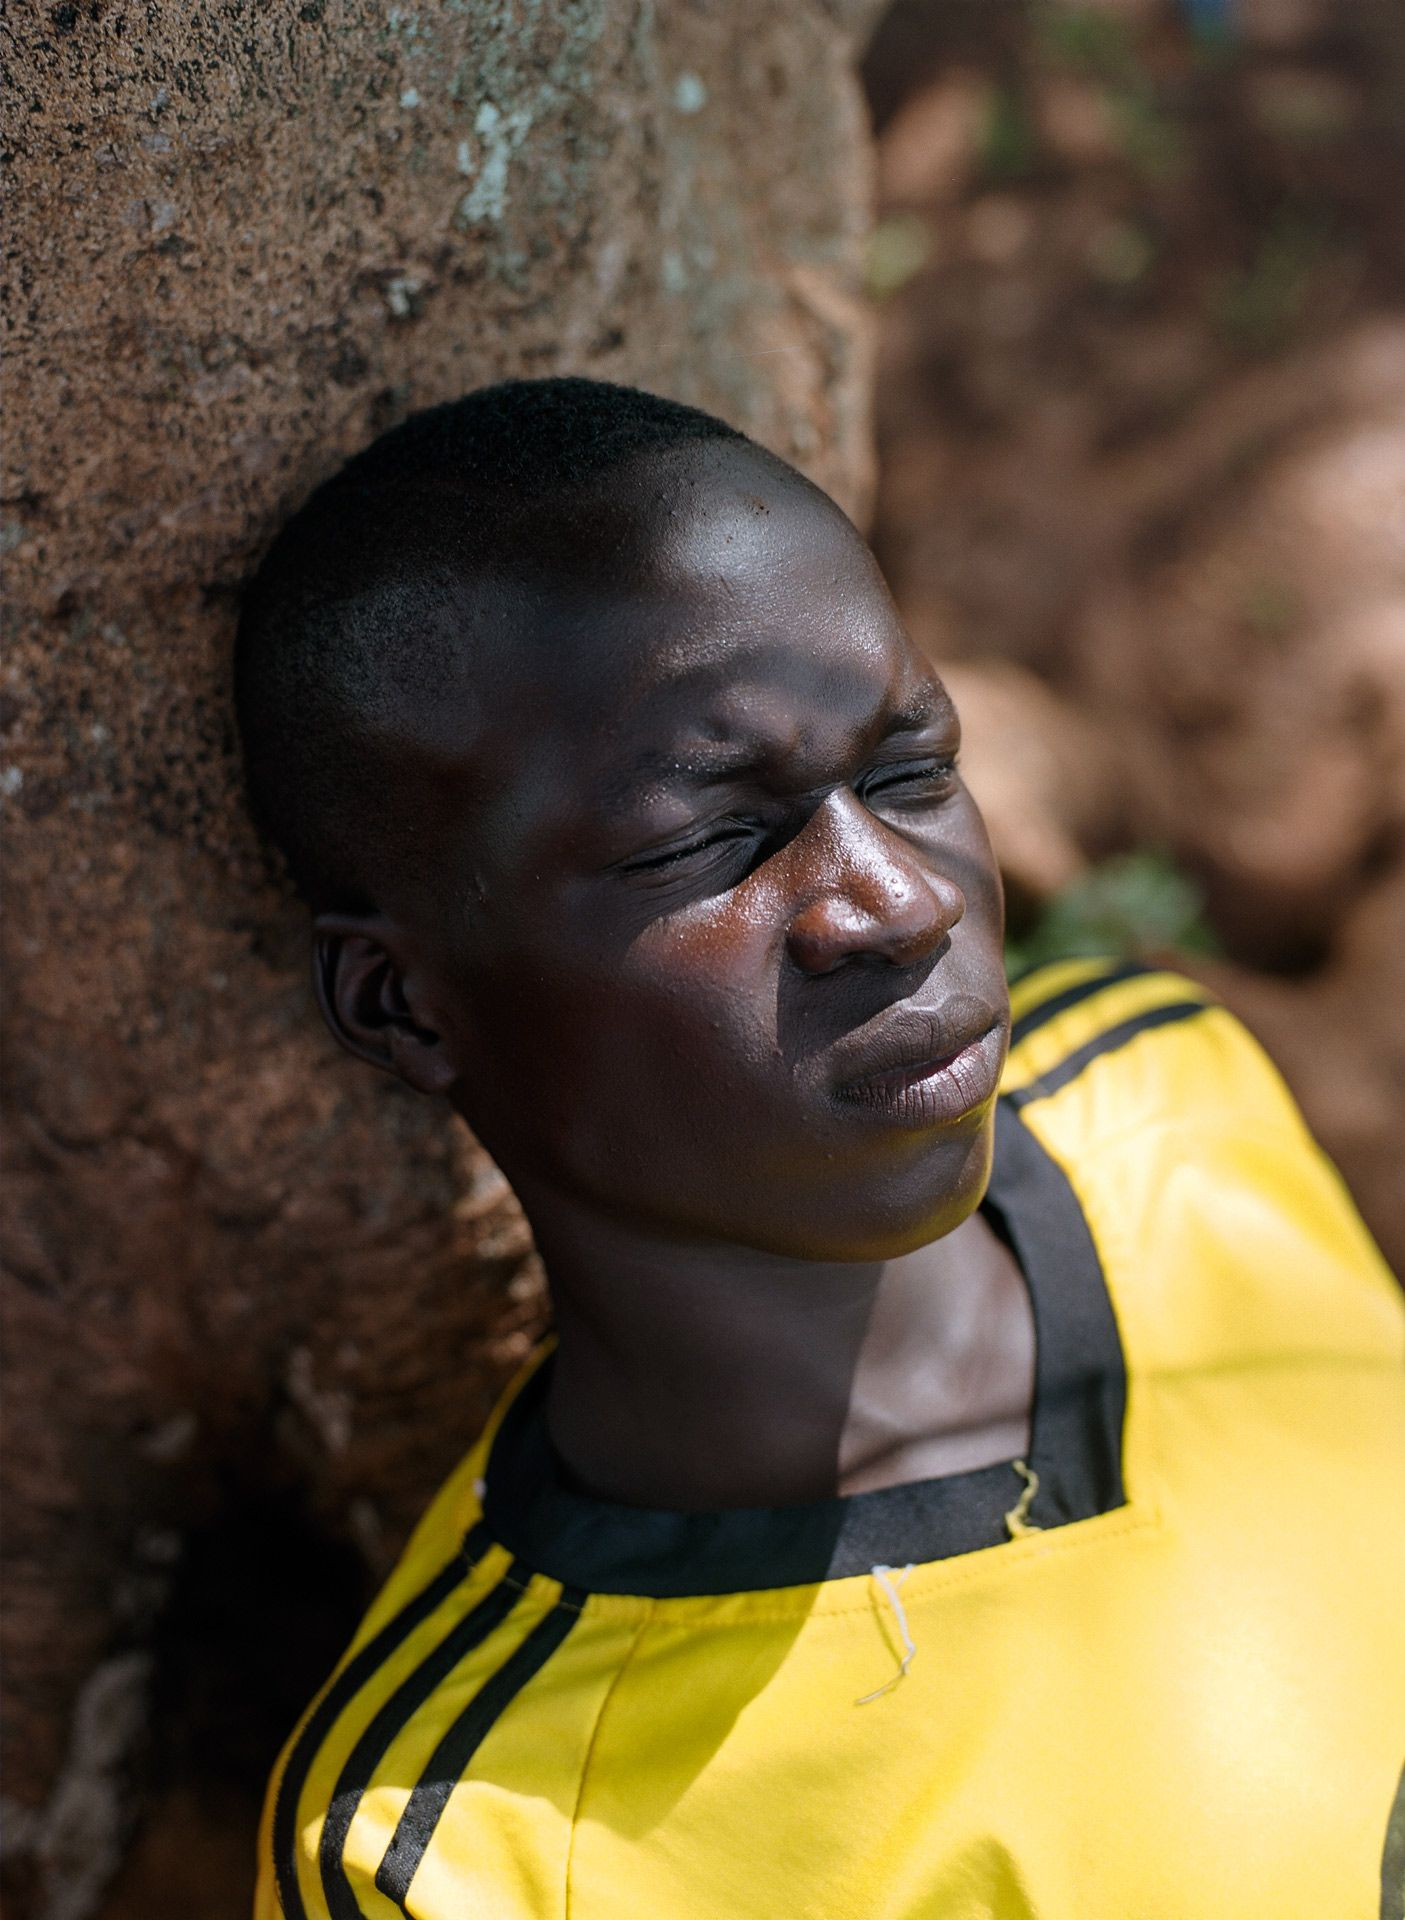 young black boy resting in the shade frowning with eyes closed against a tree by Alexi Hobbs in Uganda for Football for good with Sportsnet